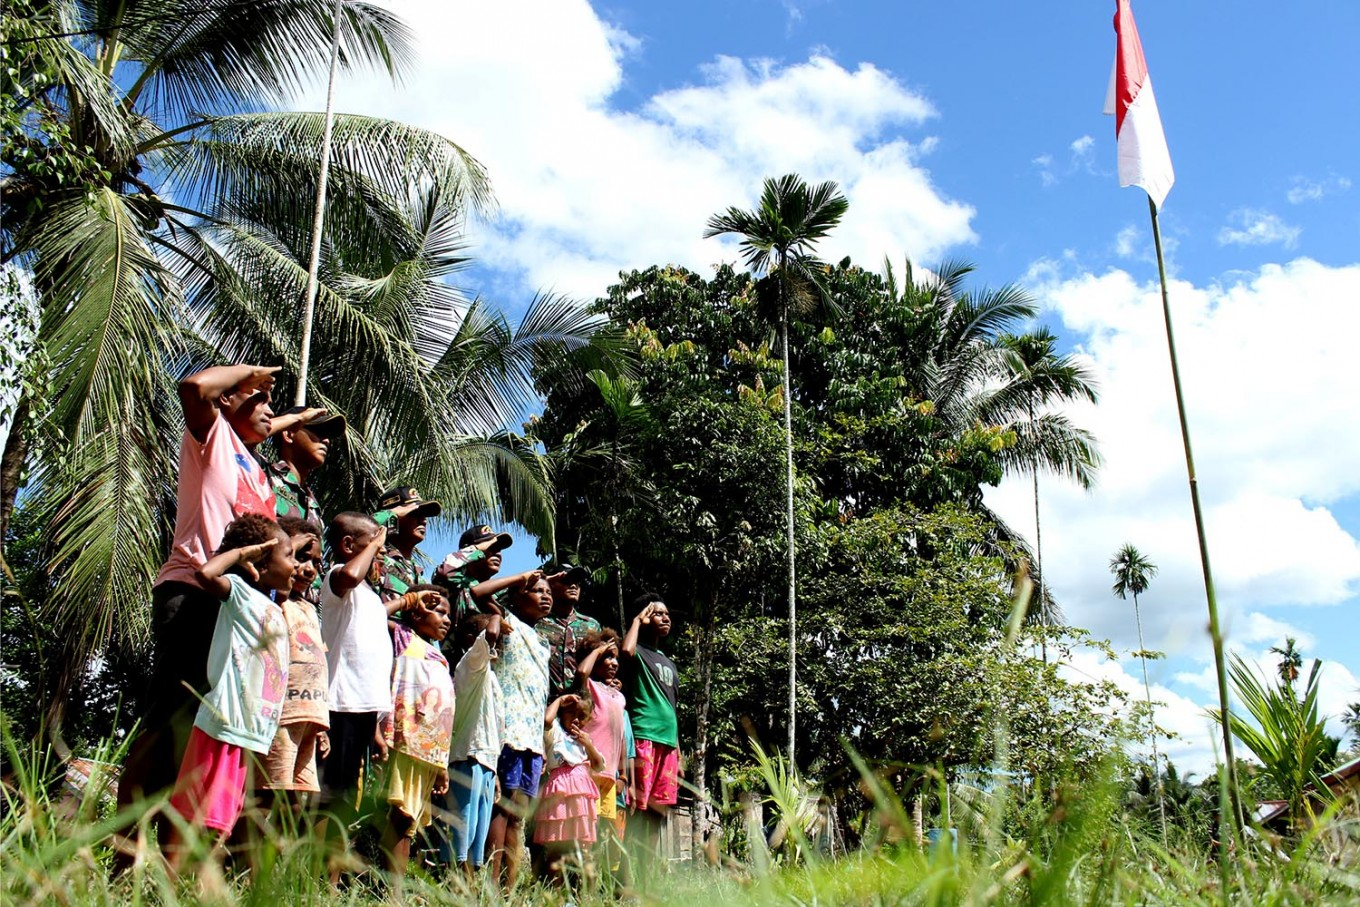 Government to shift focus from infrastructure to education in Papua